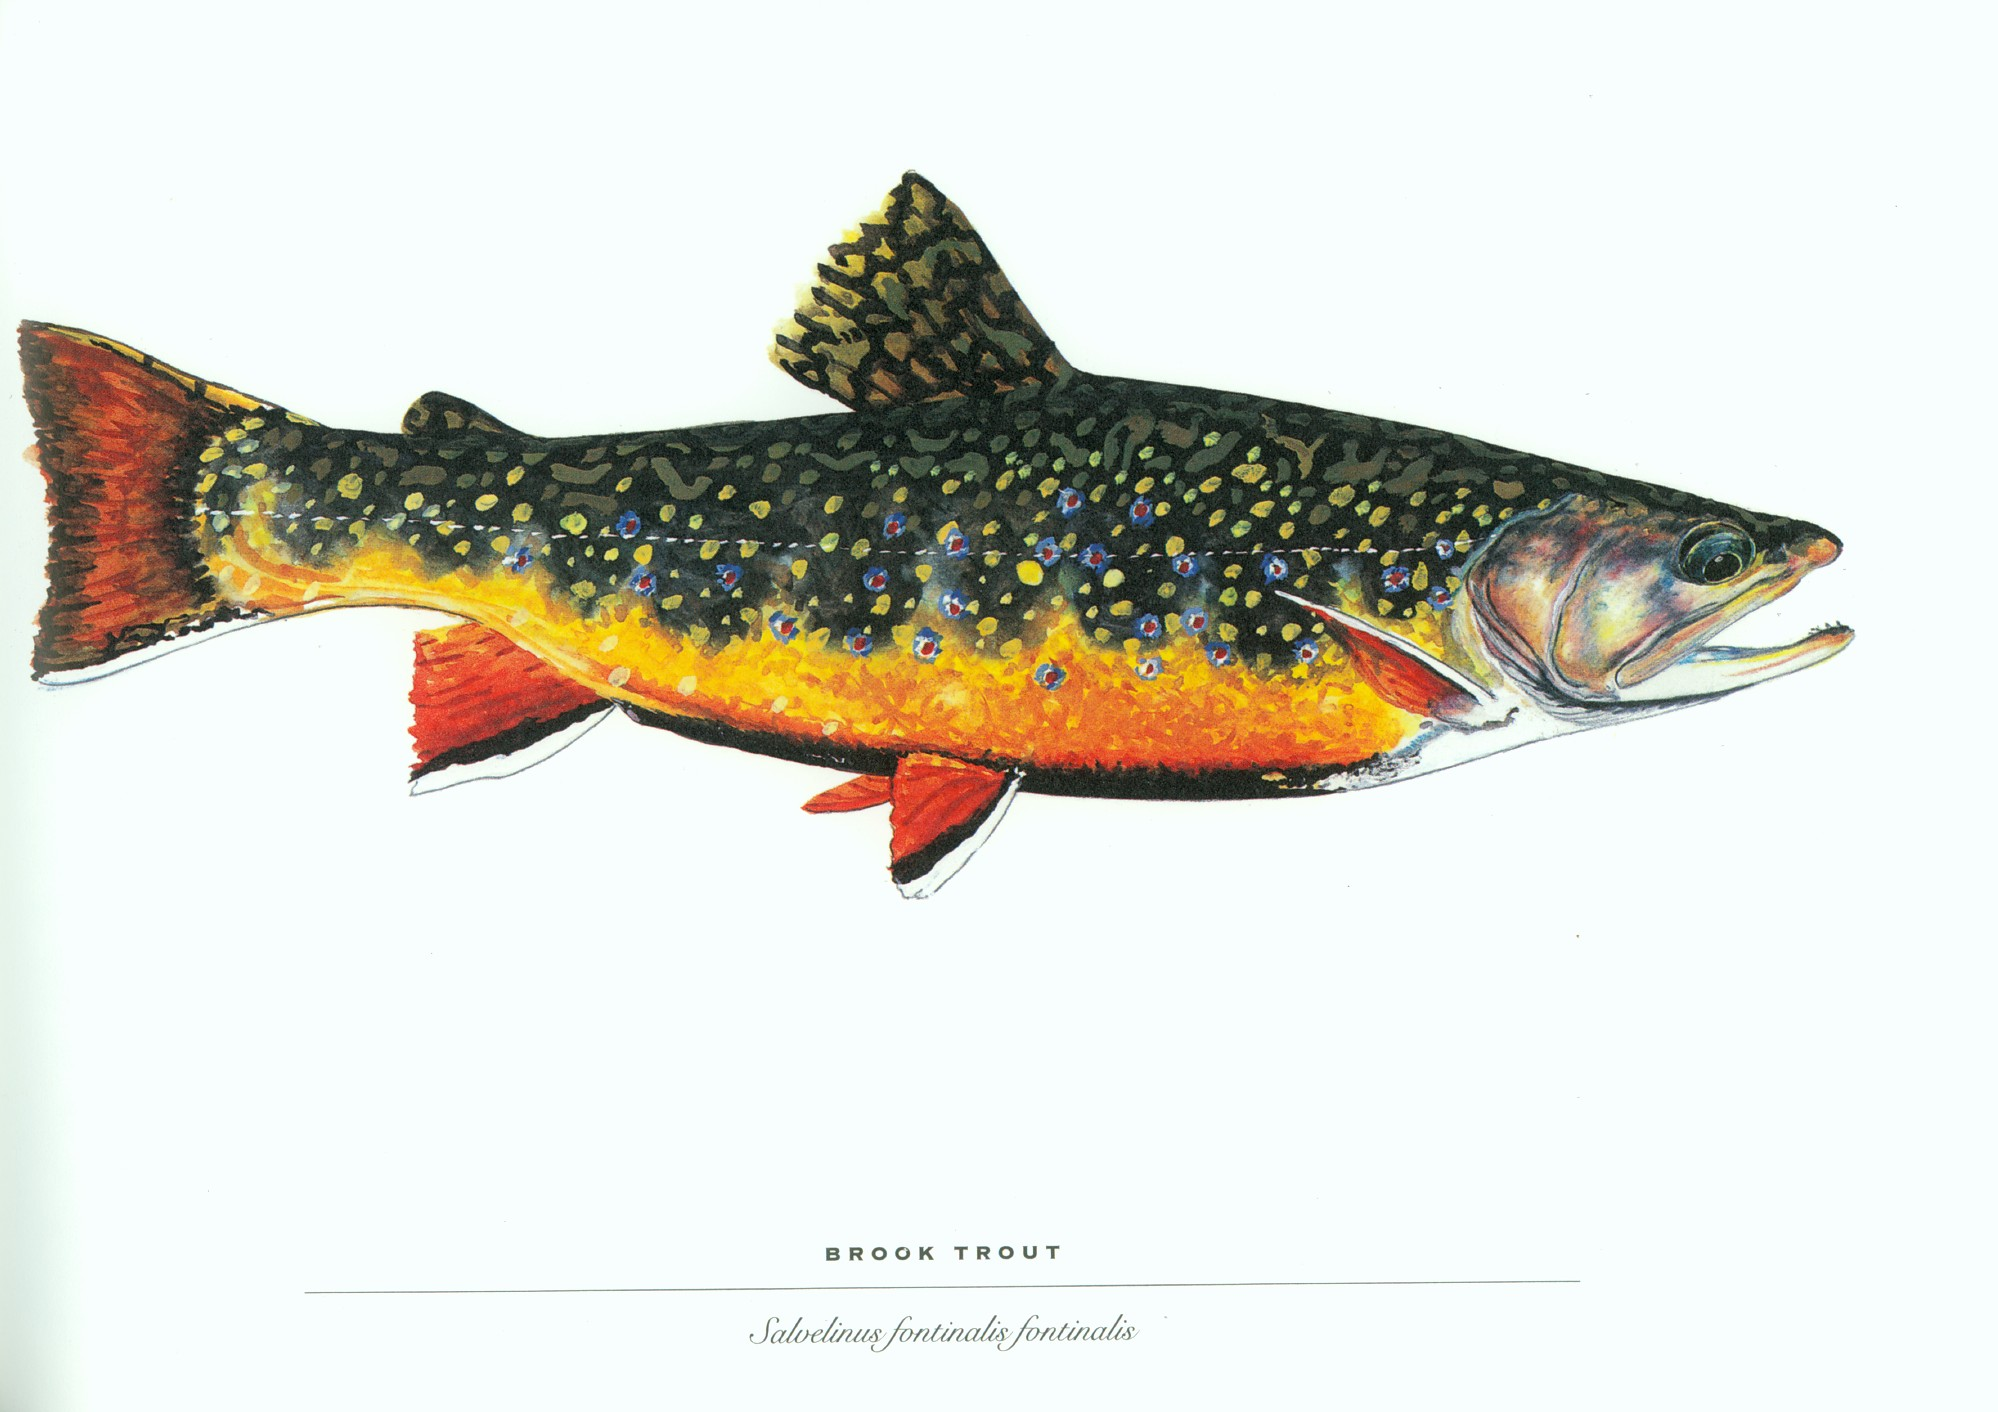 trout wallpaper free backgrounds - photo #8